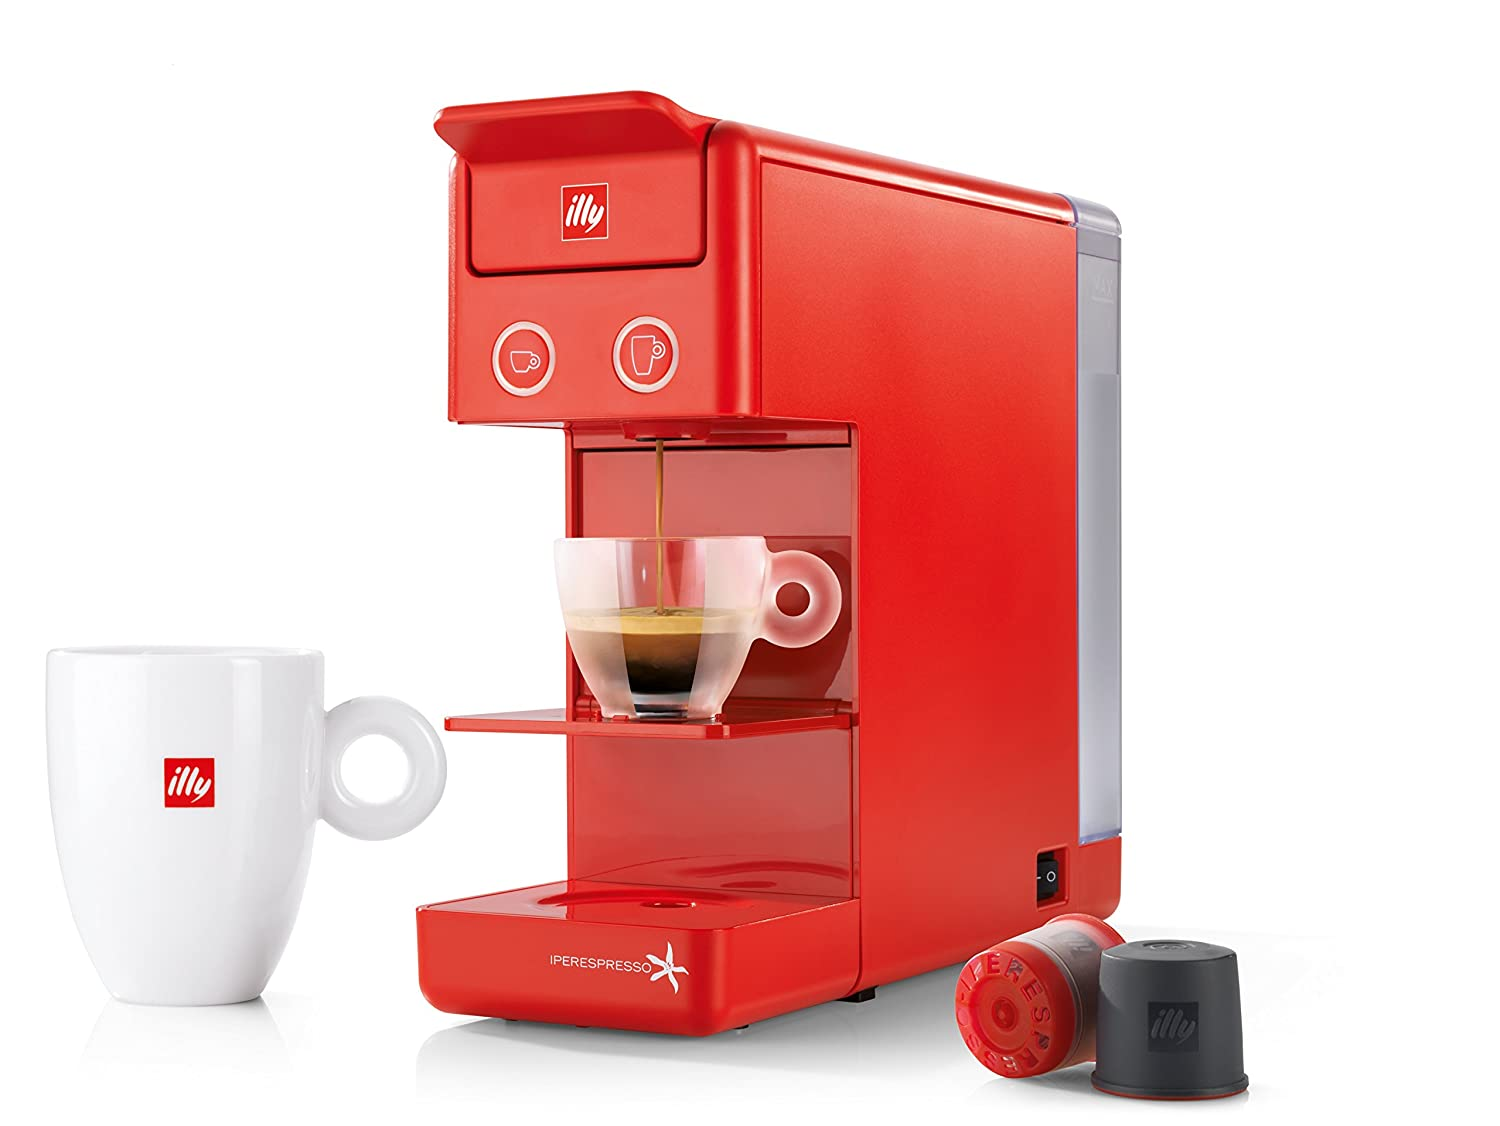 illy Y3.2 iperEspresso and Coffee Machine, Black 60296